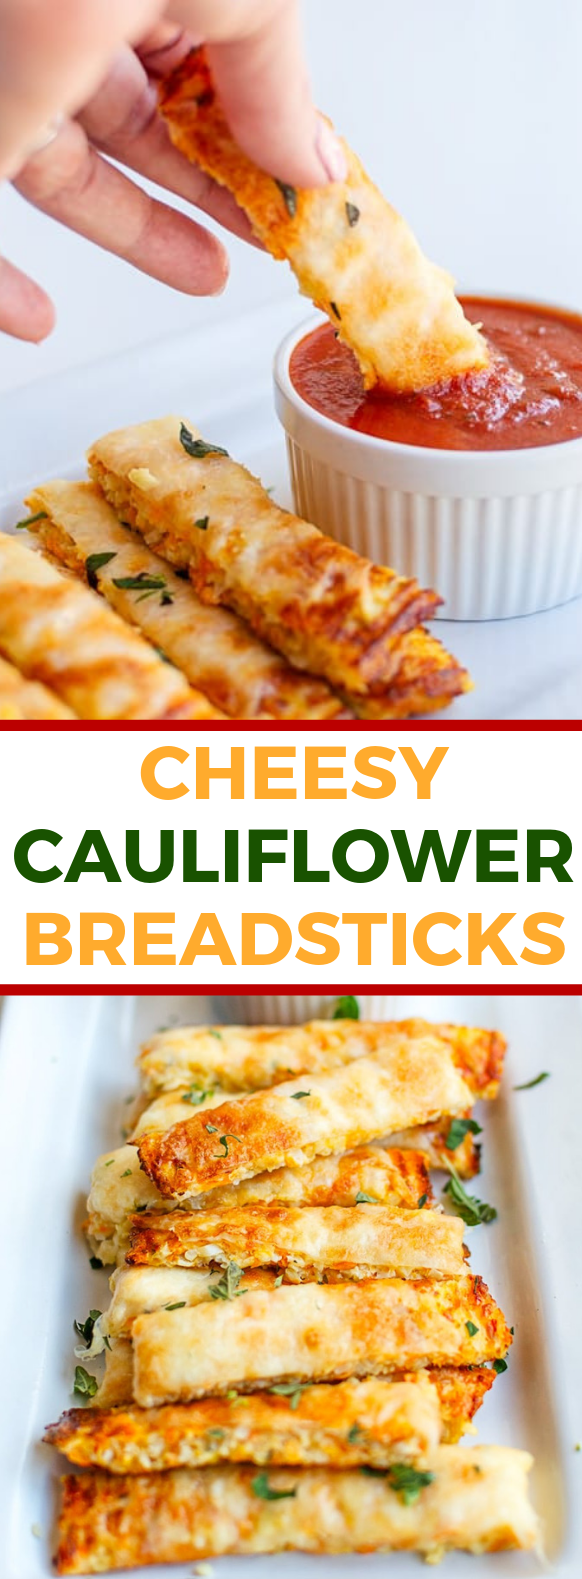 HOW TO MAKE THESE 3 INGREDIENT CHEESY CAULIFLOWER BREADSTICKS #healthydiet #lowcarb